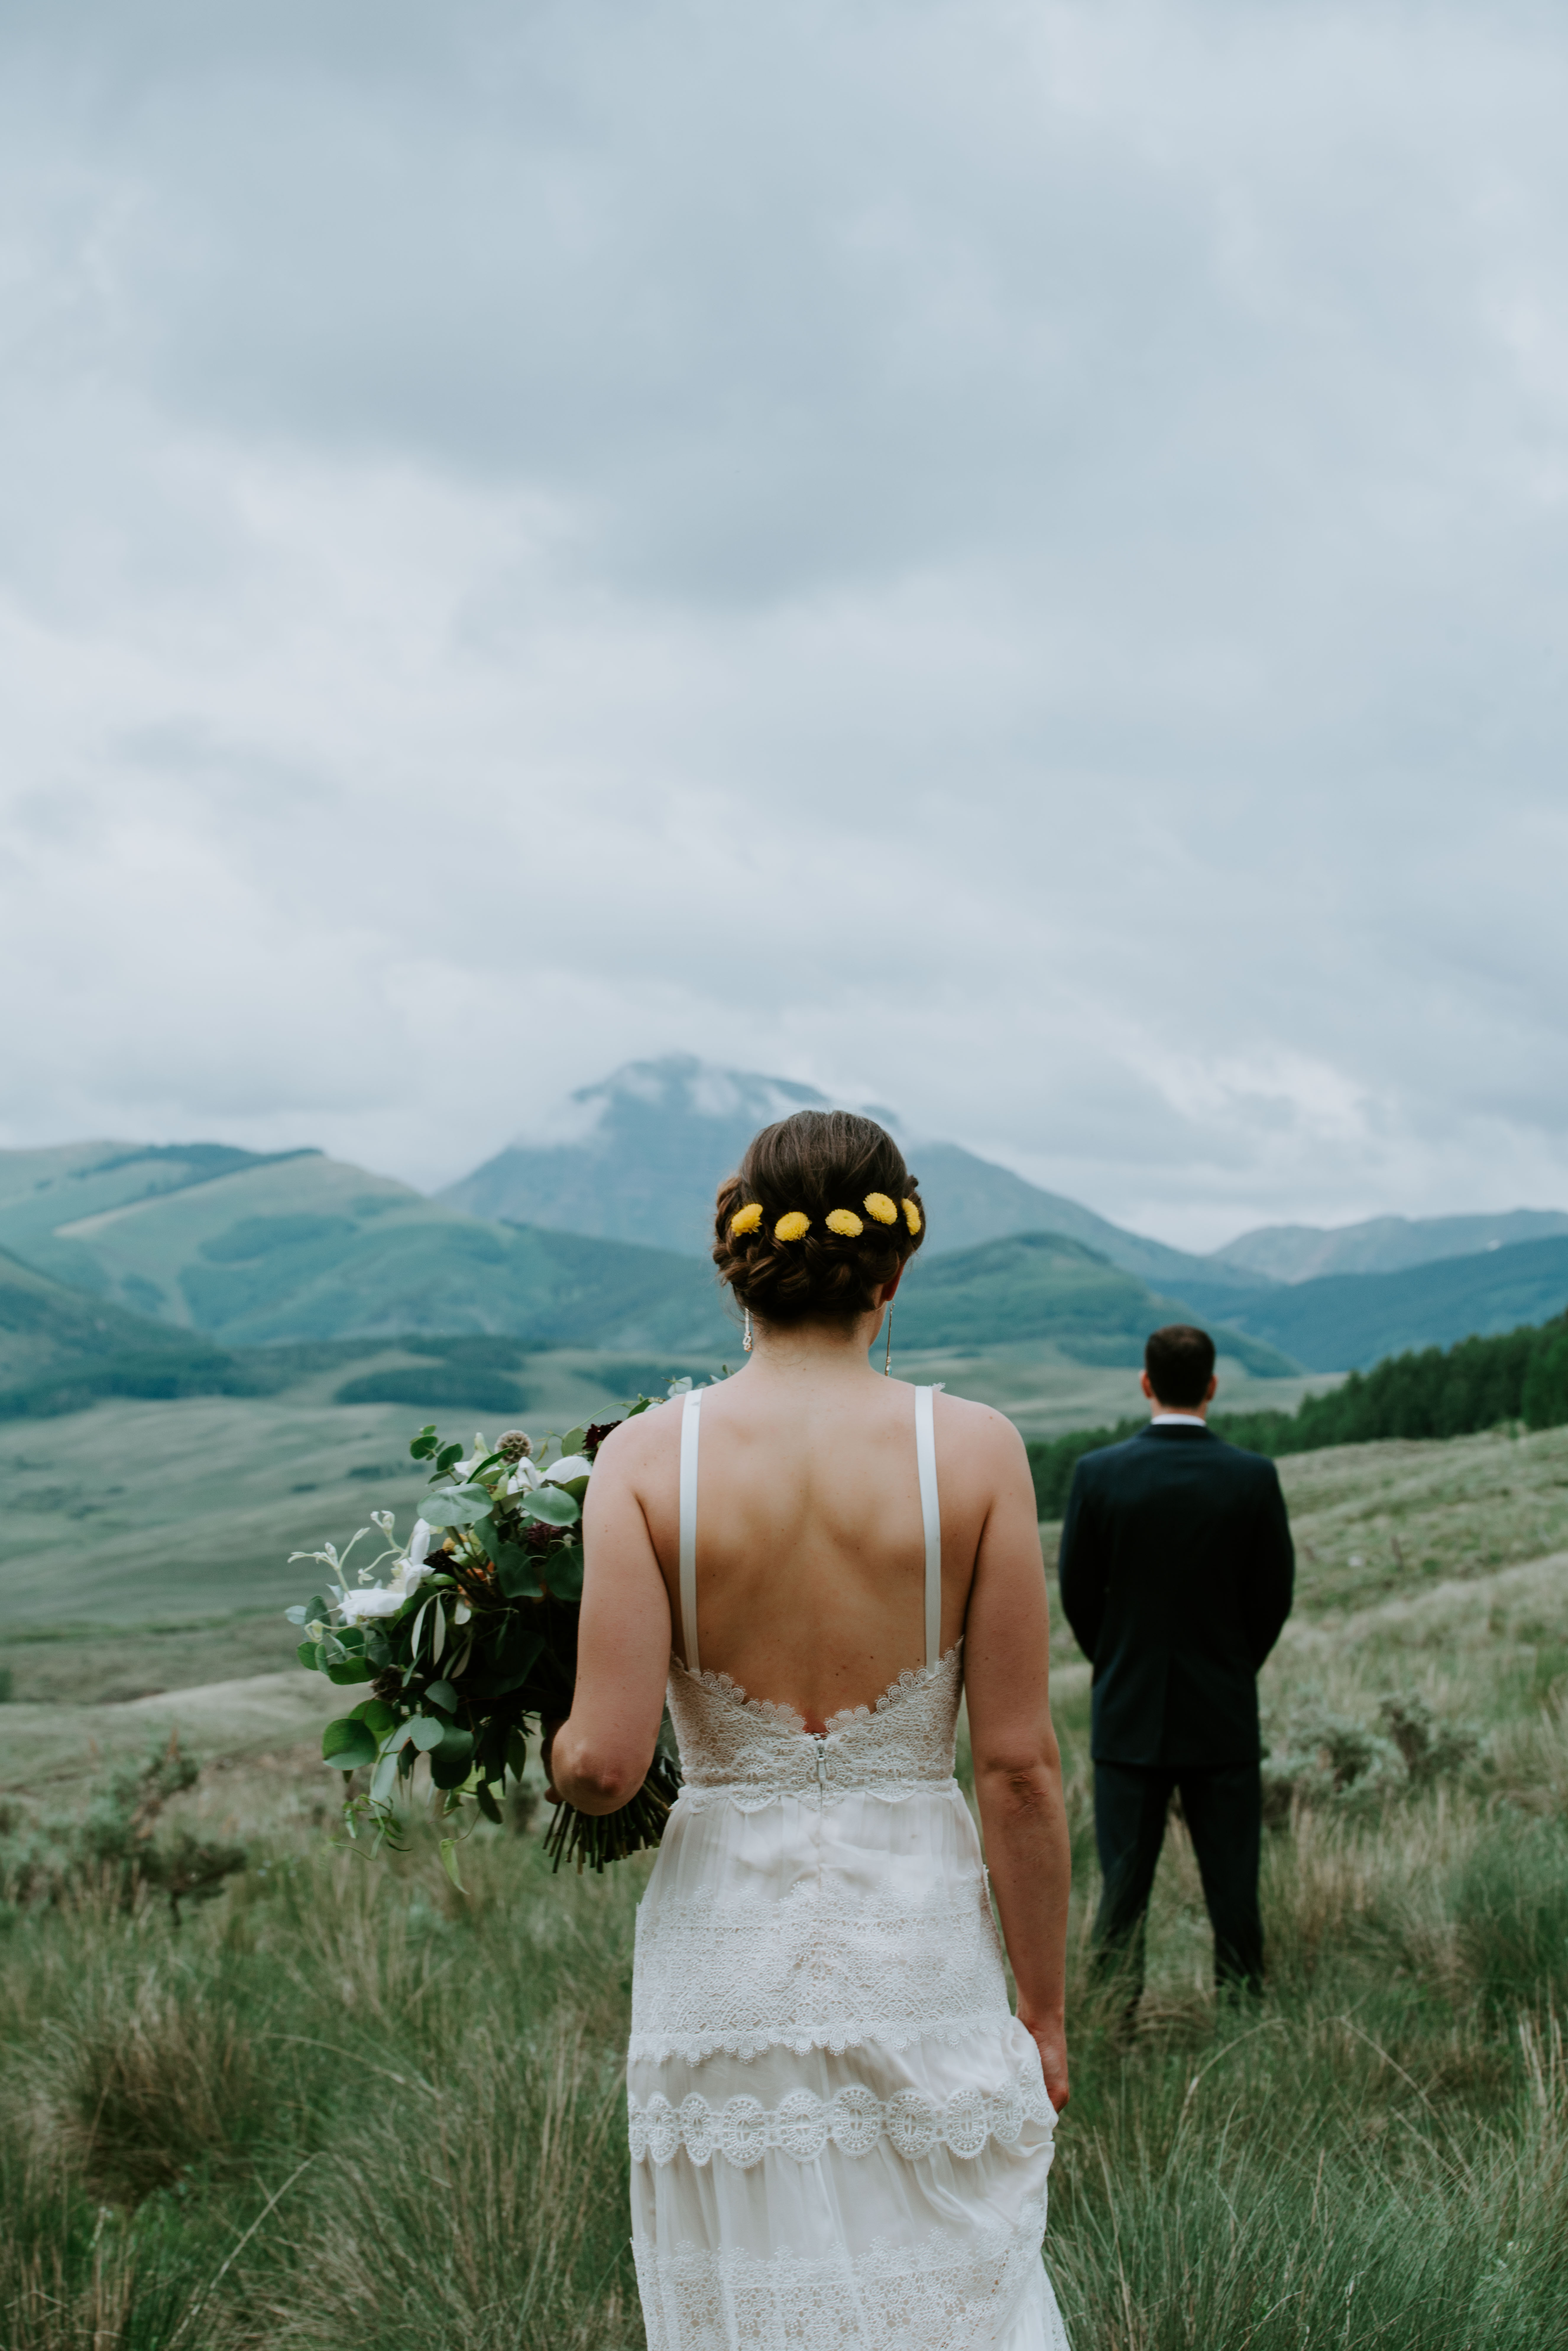 Laura_Alexe_Wedding_Crested_Butte_MegONeillPhotography__180616_28